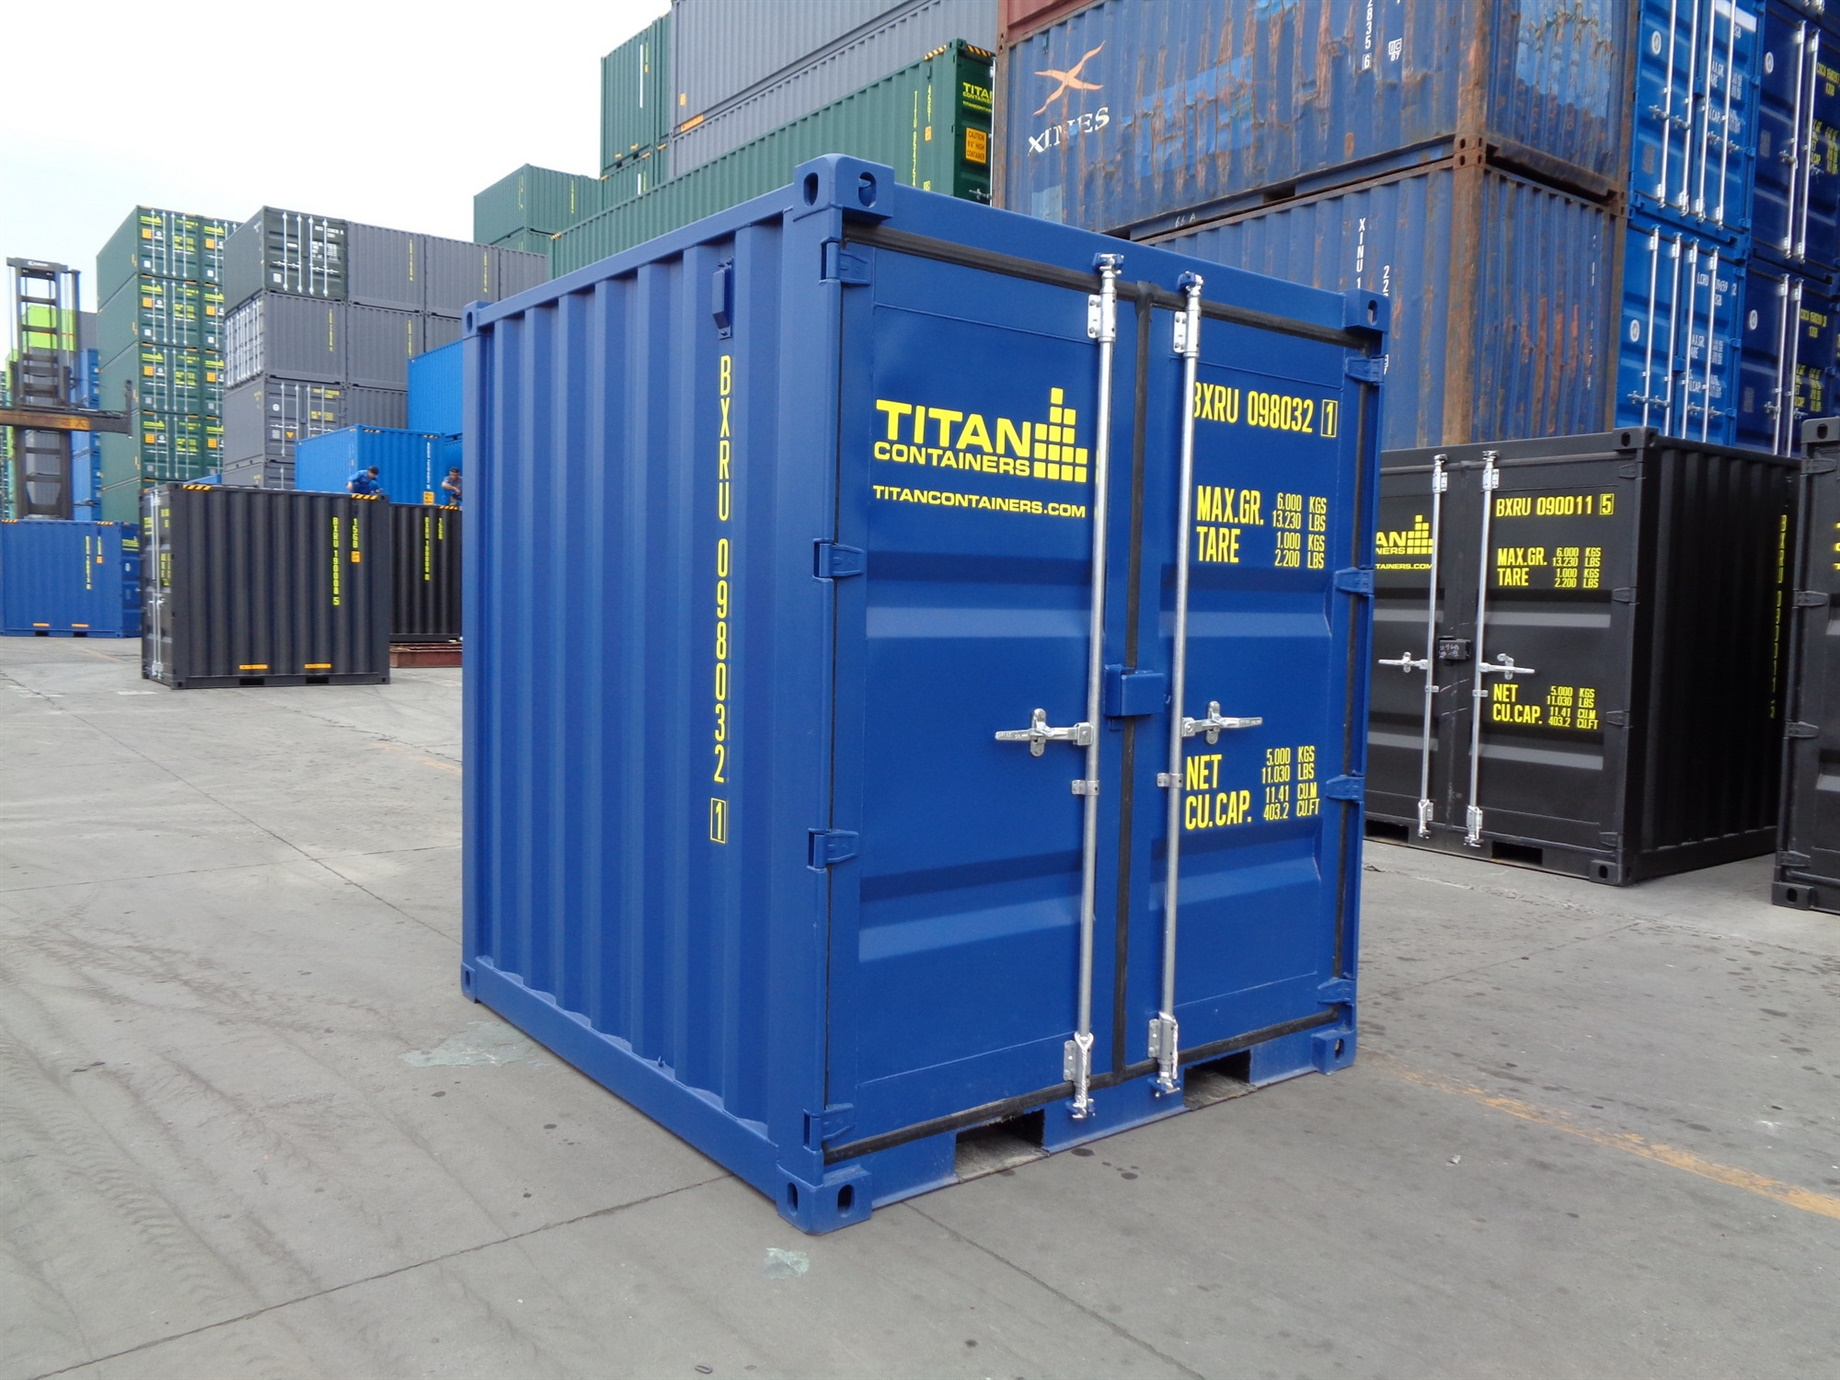 6 8 10 blue doors closed foot storage container TITAN Shiipping Containers